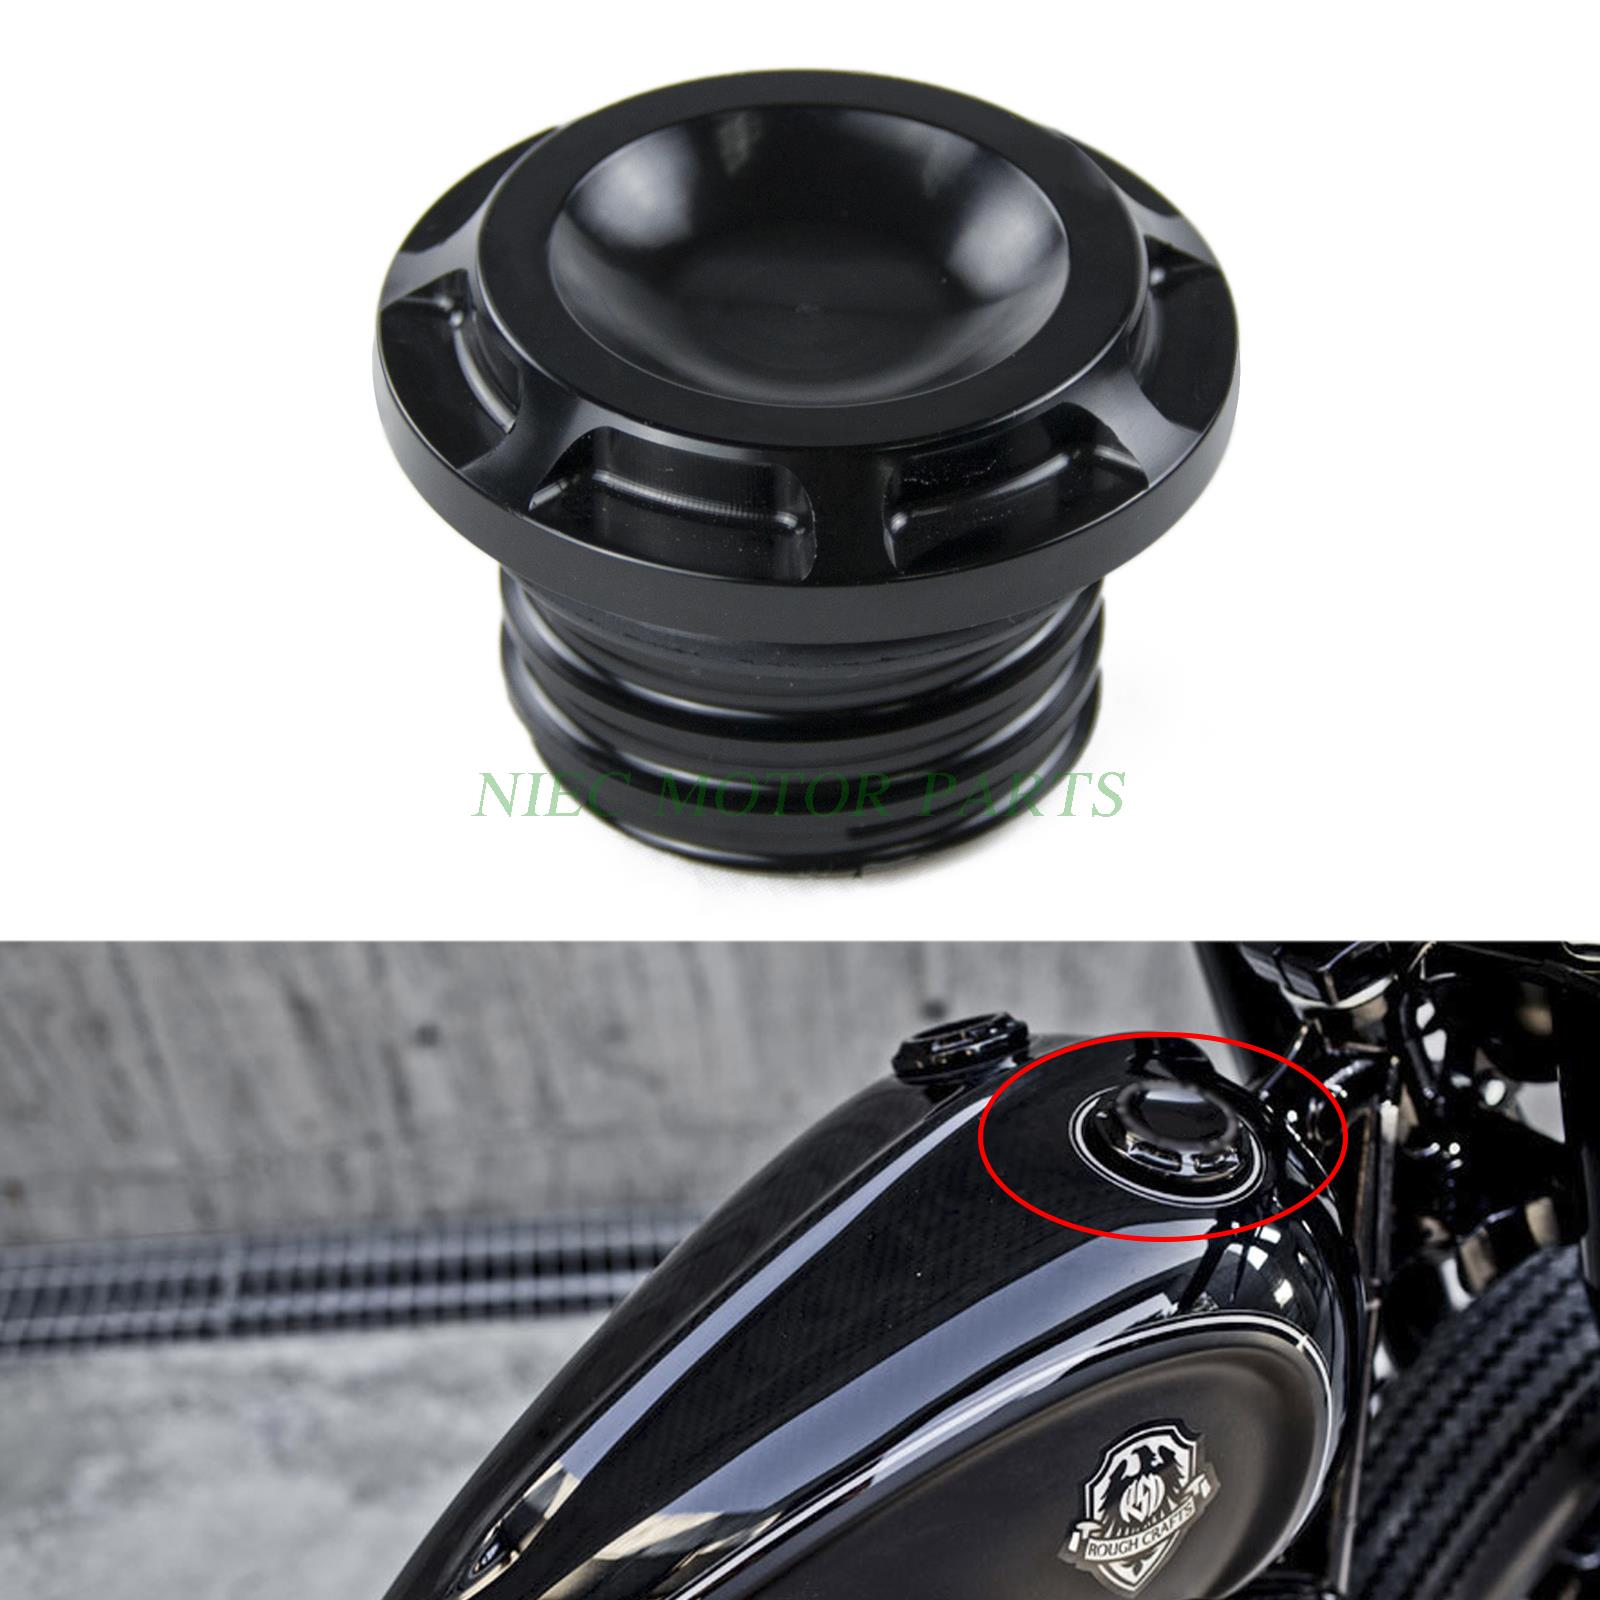 Motorcycle  CNC Groove Gas Cap Fuel Cap For Harley-Davidson Dyna Softail Sportster 883/1200 Touring Road King aftermarket free shipping motorcycle parts brake clutch lever fit for harley davidson davidson xl sportster 883 1200 softail cd